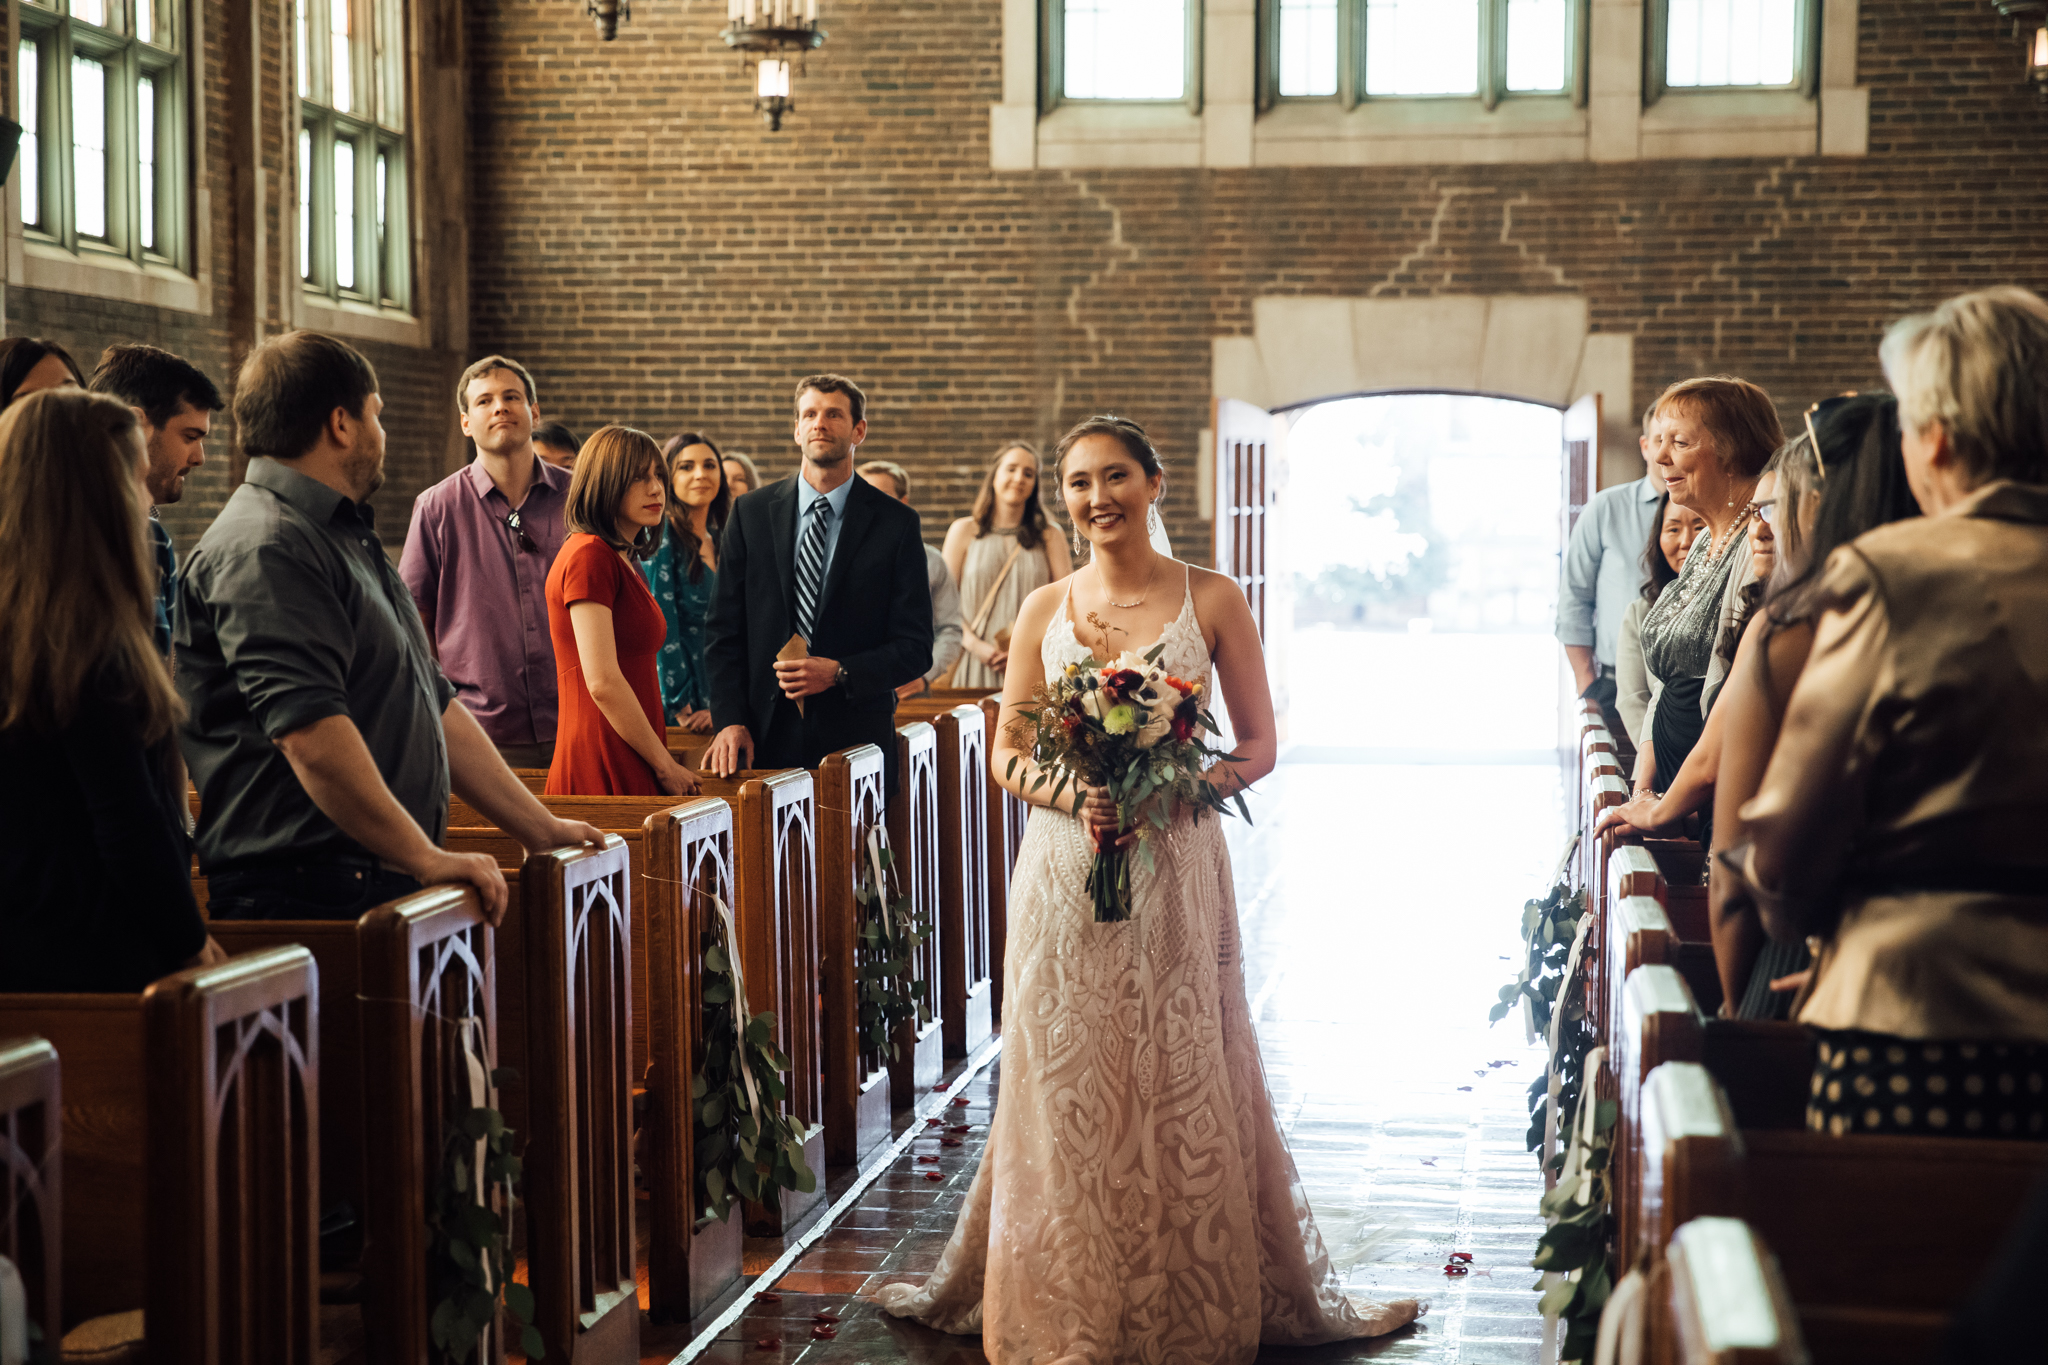 chattanooga-wedding-photographers-thewarmtharoundyou-waterhouse-pavilion-patten-chapel-wedding-sam-dusty (75 of 269).jpg